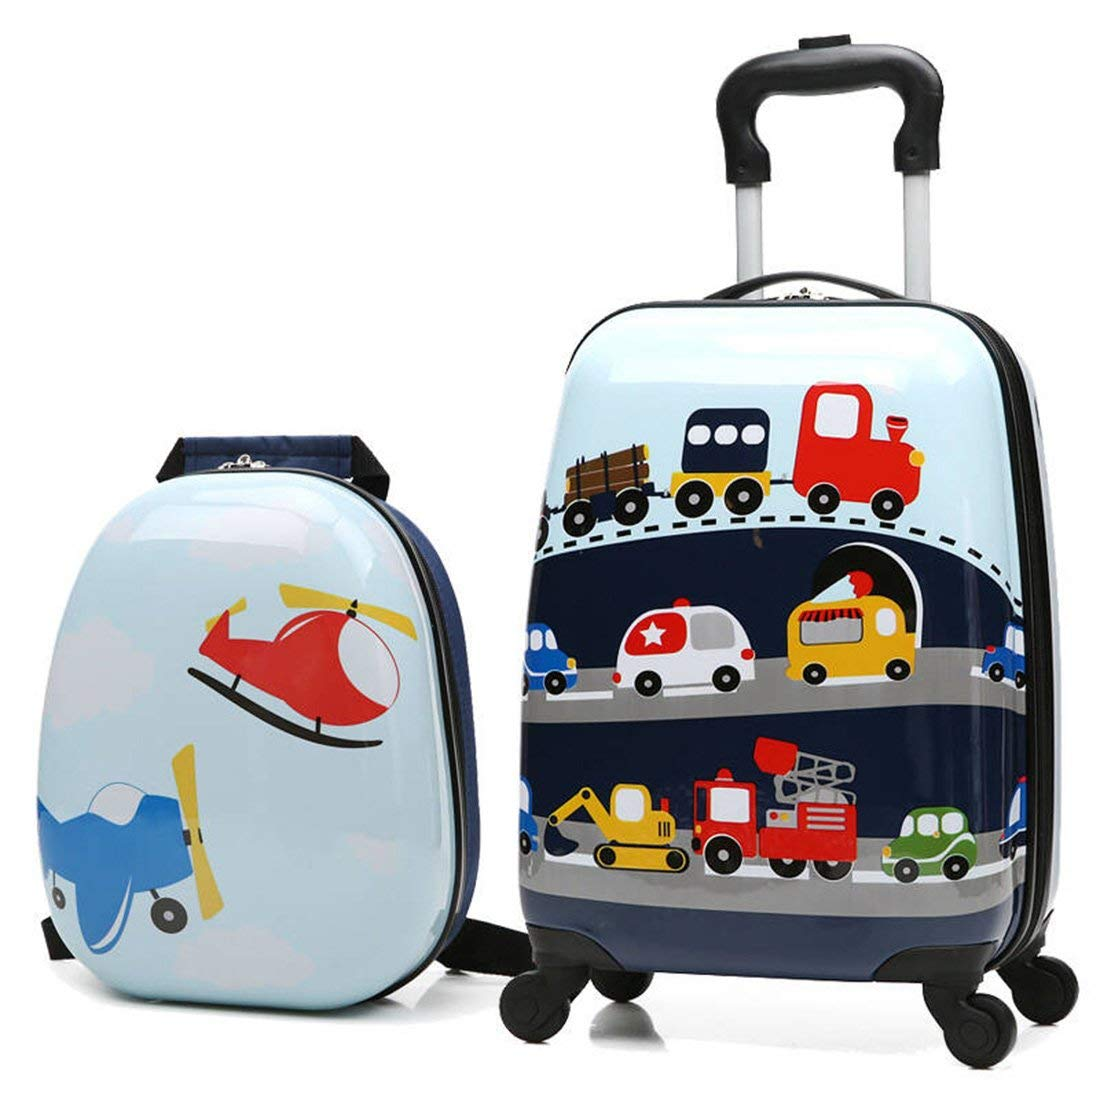 Owls, 18 Children Rolling Suitcase Animal Cartoon Pattern Carry On 18 in Travel Luggage Case With Universal Wheels Cartoon Owls Trolley Suitcase